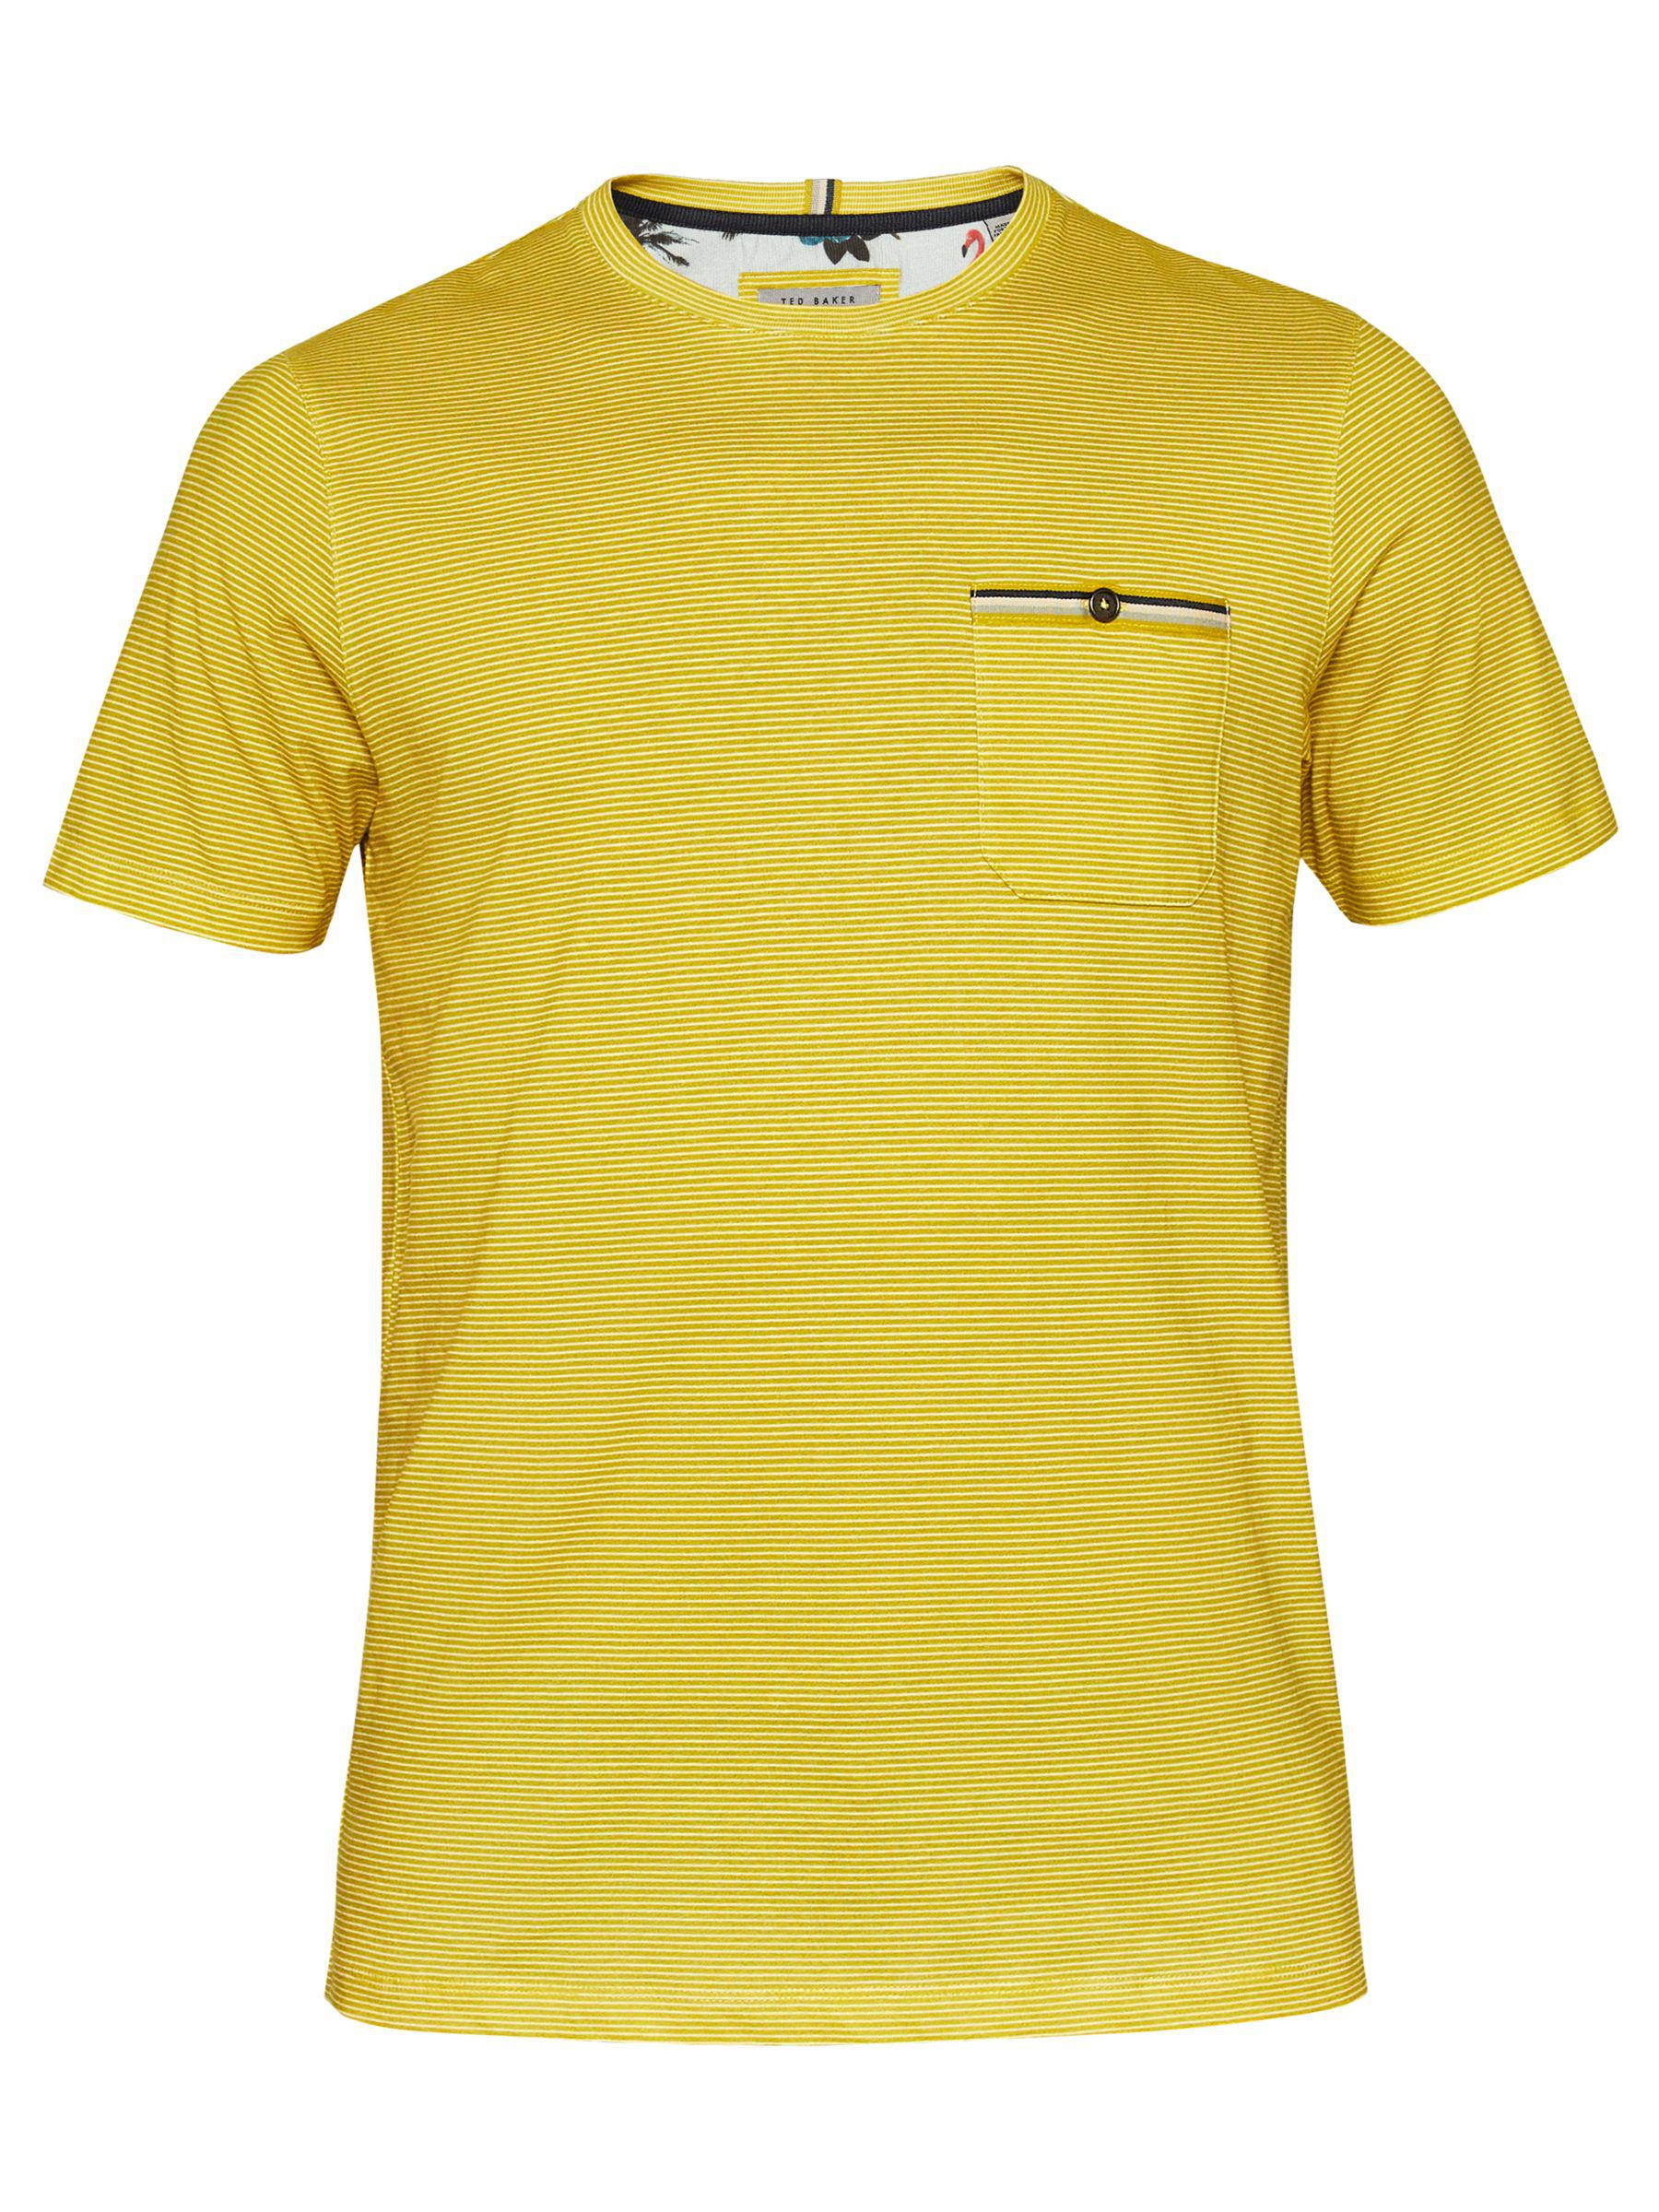 ac97d93a Ted Baker Pikmix Short Sleeve Stripe T-shirt in Yellow for Men - Lyst